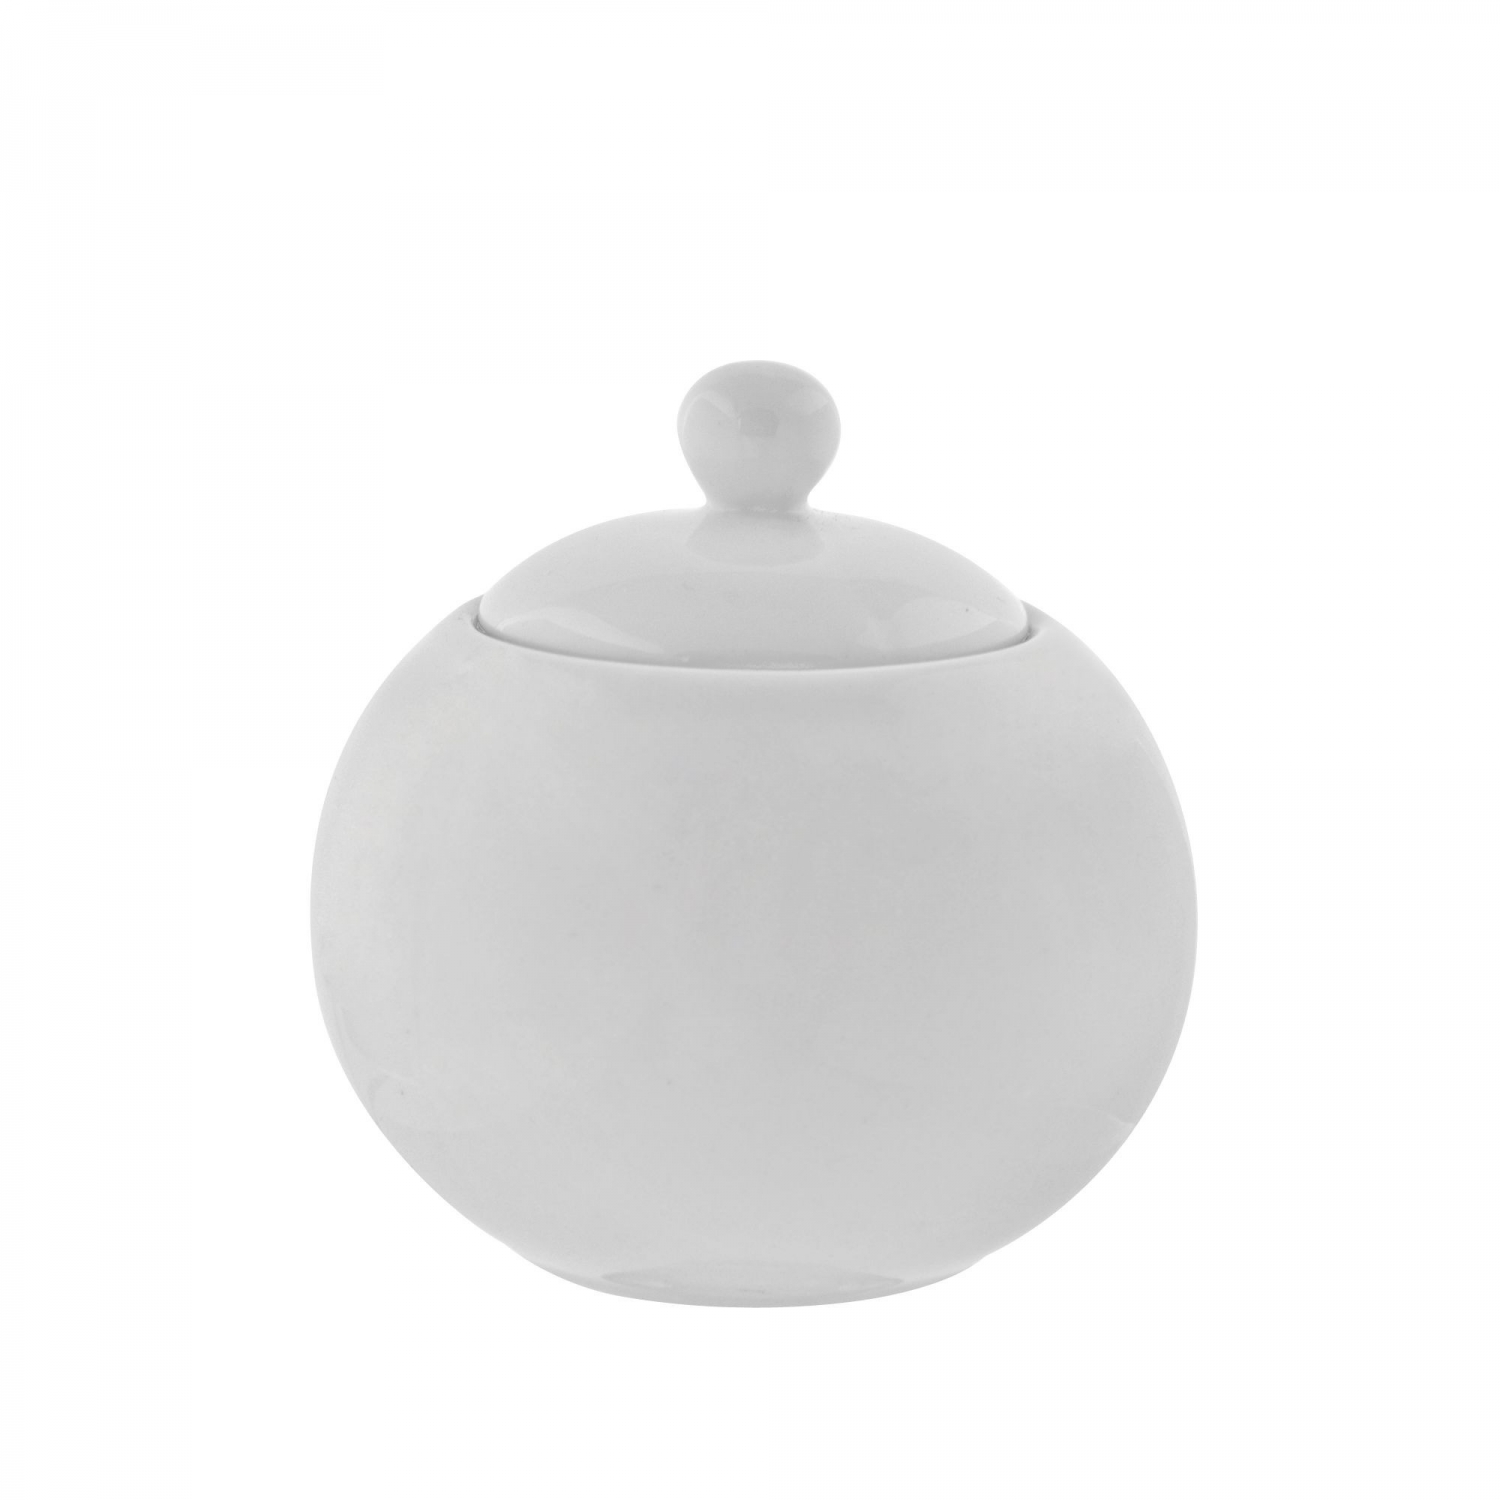 10 Strawberry Street WTR-18 Whittier Sugar Bowl with Cover 13 oz.